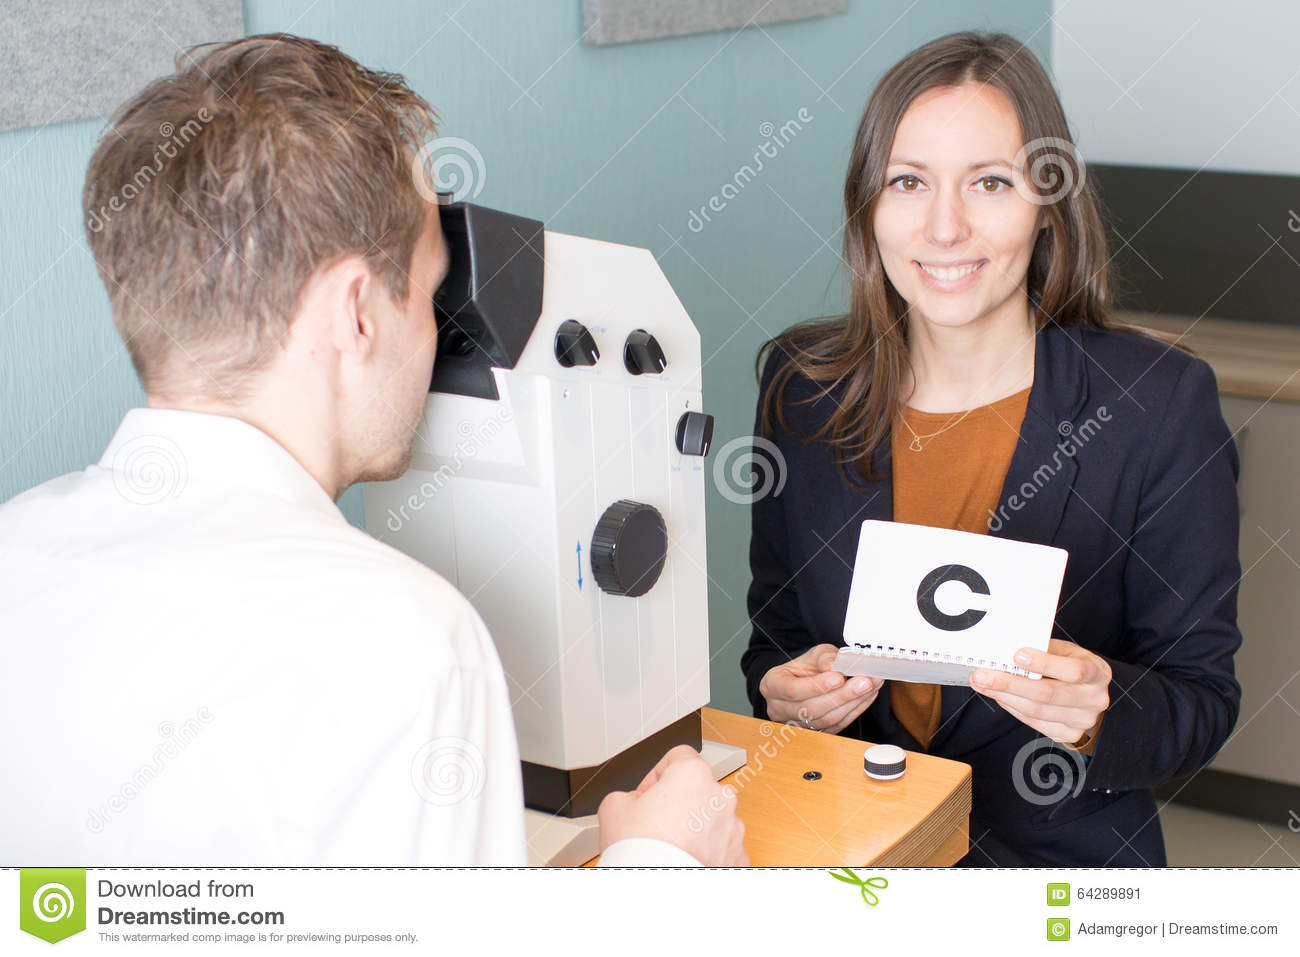 Communication on this topic: How to Prepare for an Eye Exam, how-to-prepare-for-an-eye-exam/